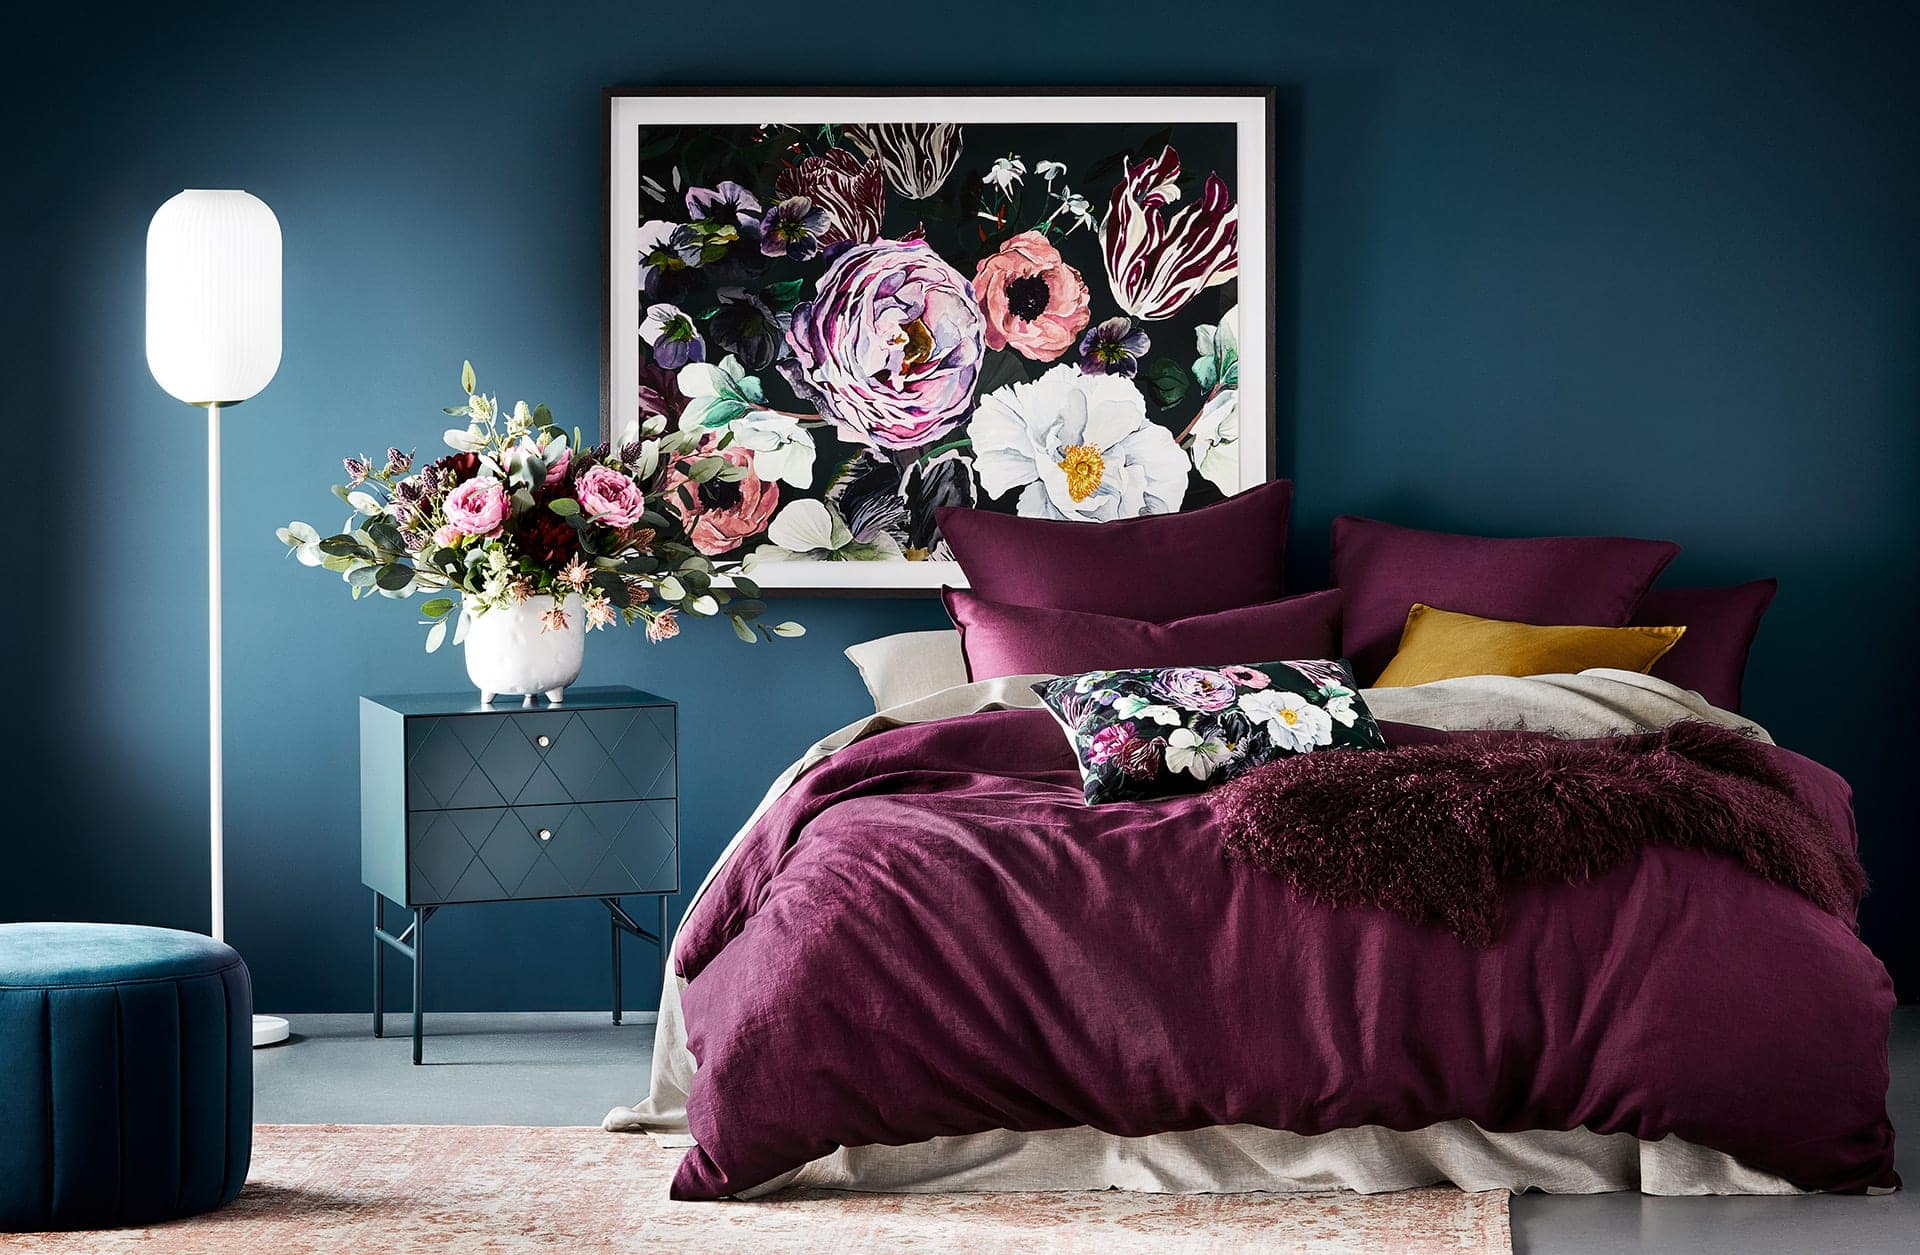 The new Romance Interior Design Trend (and where to get it)